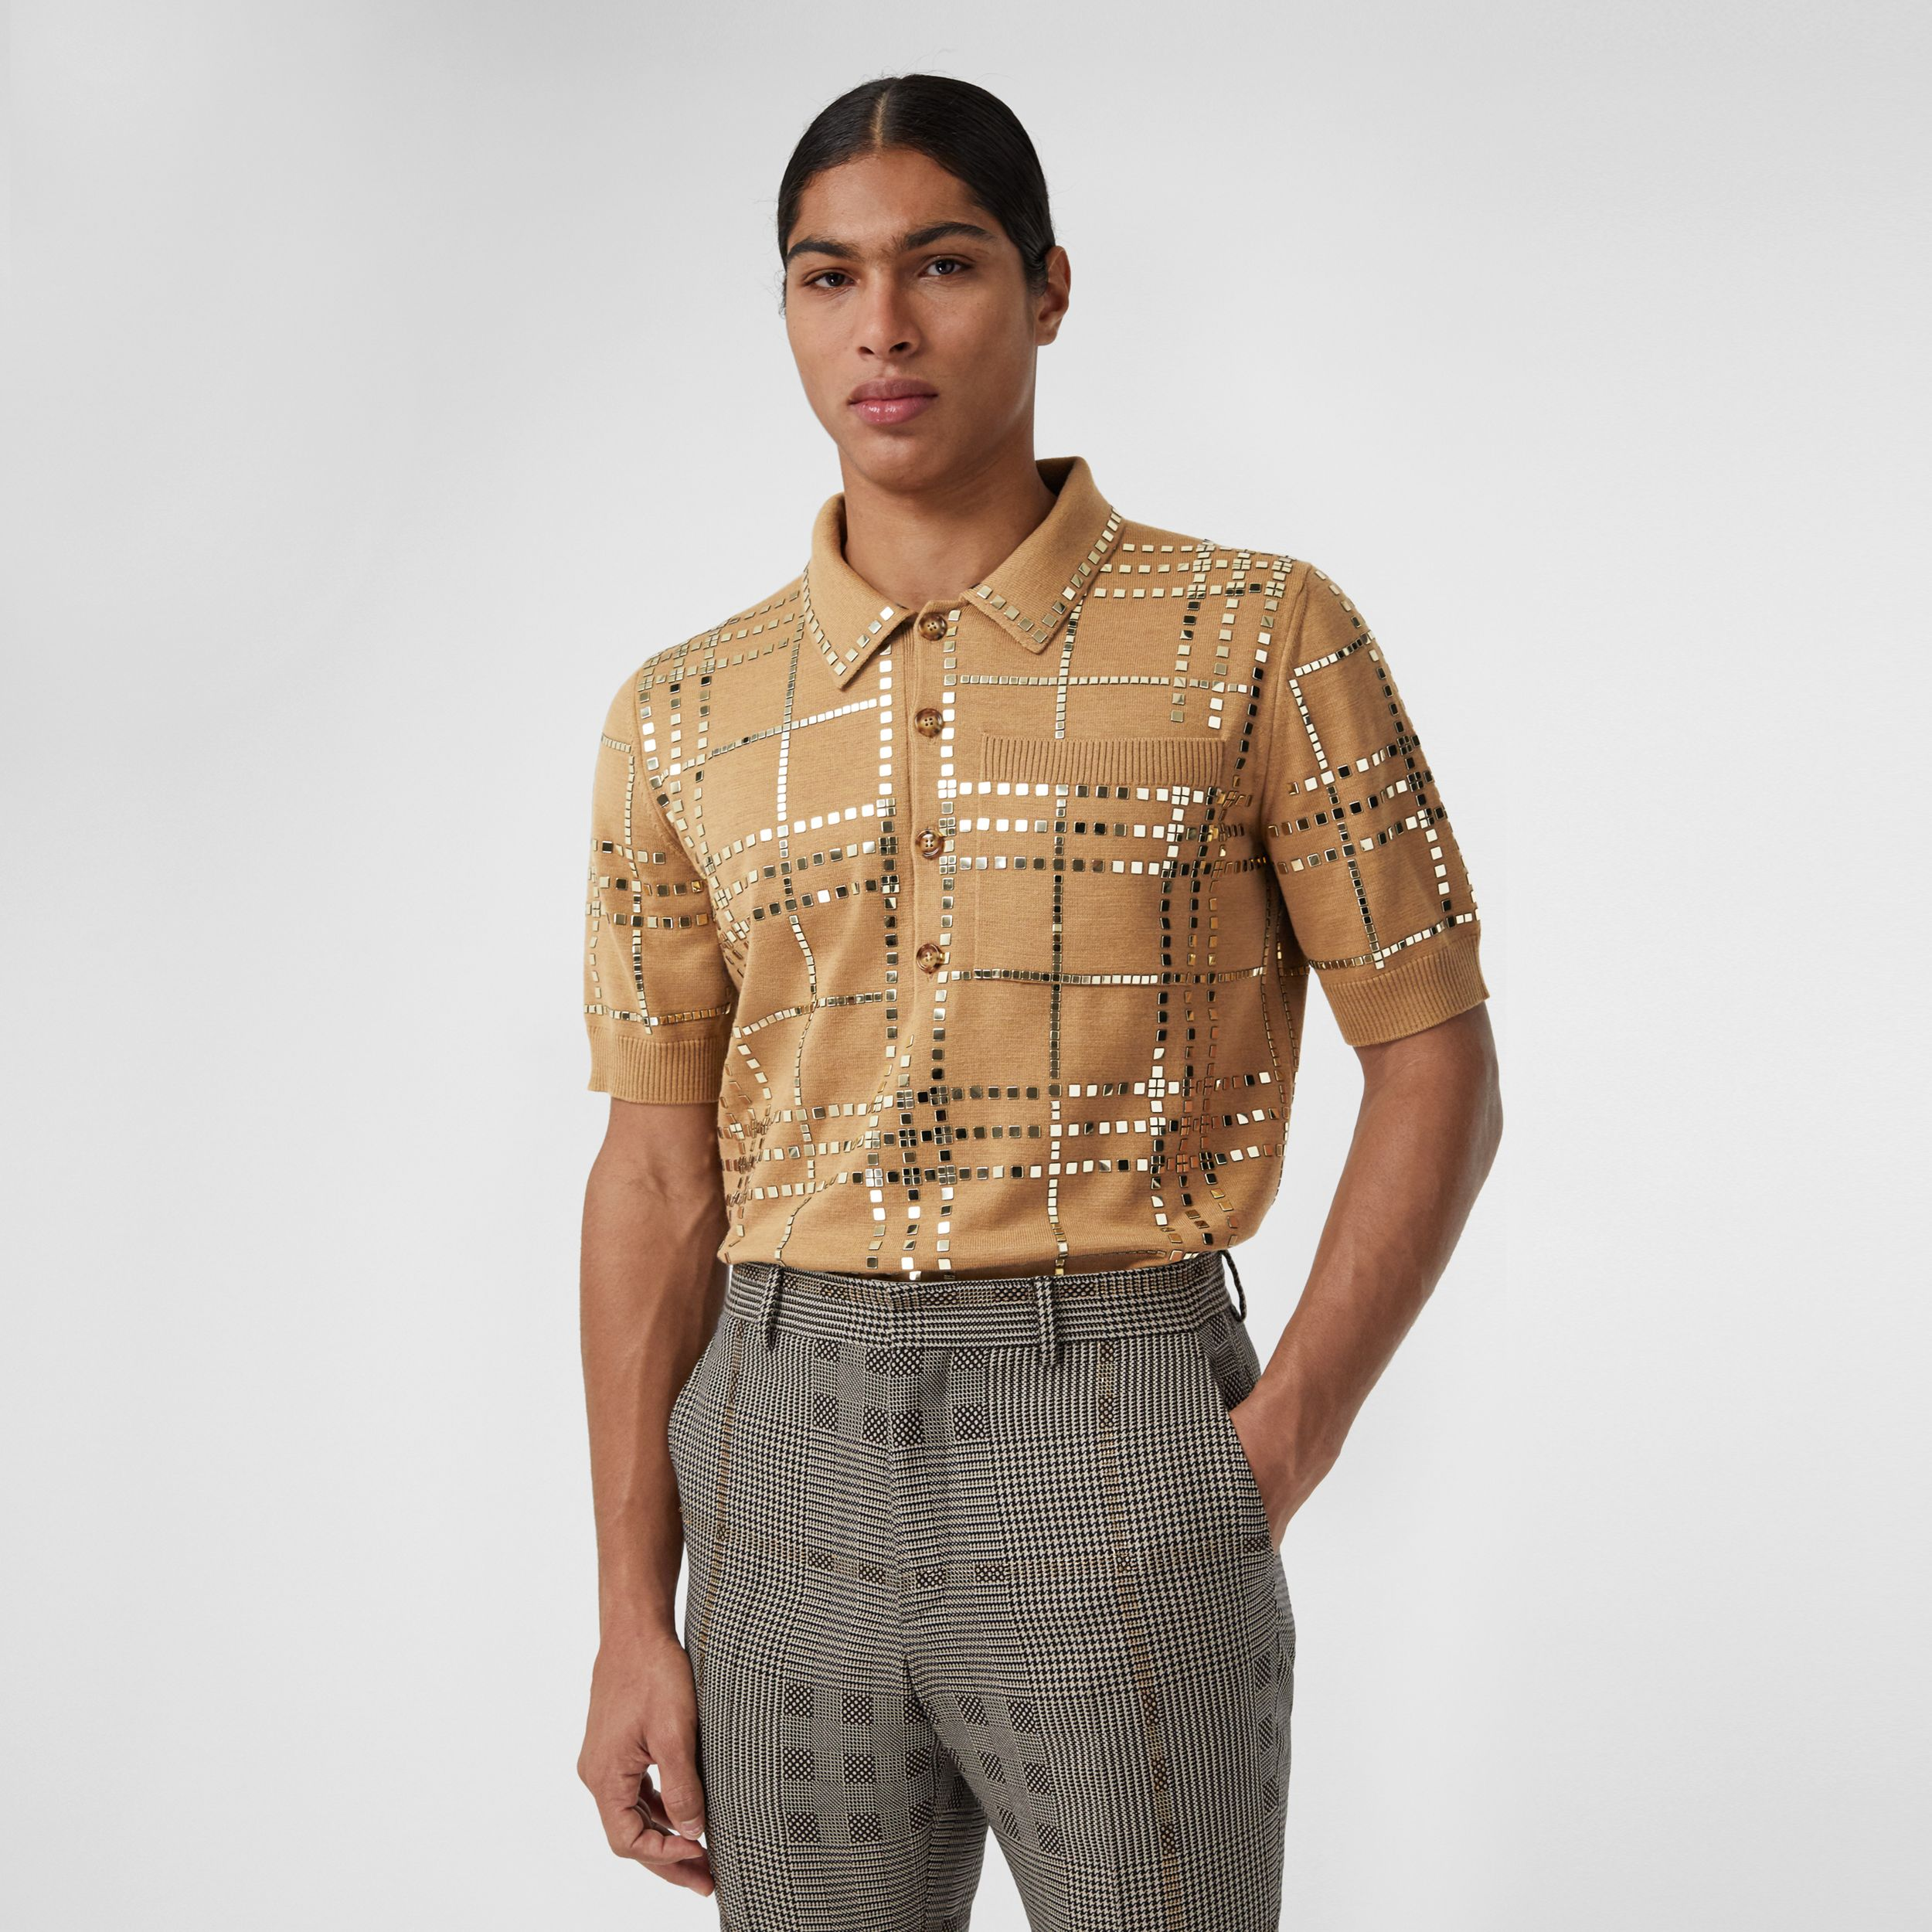 Mirrored Check Wool Jersey Polo Shirt in Camel - Men | Burberry - 1